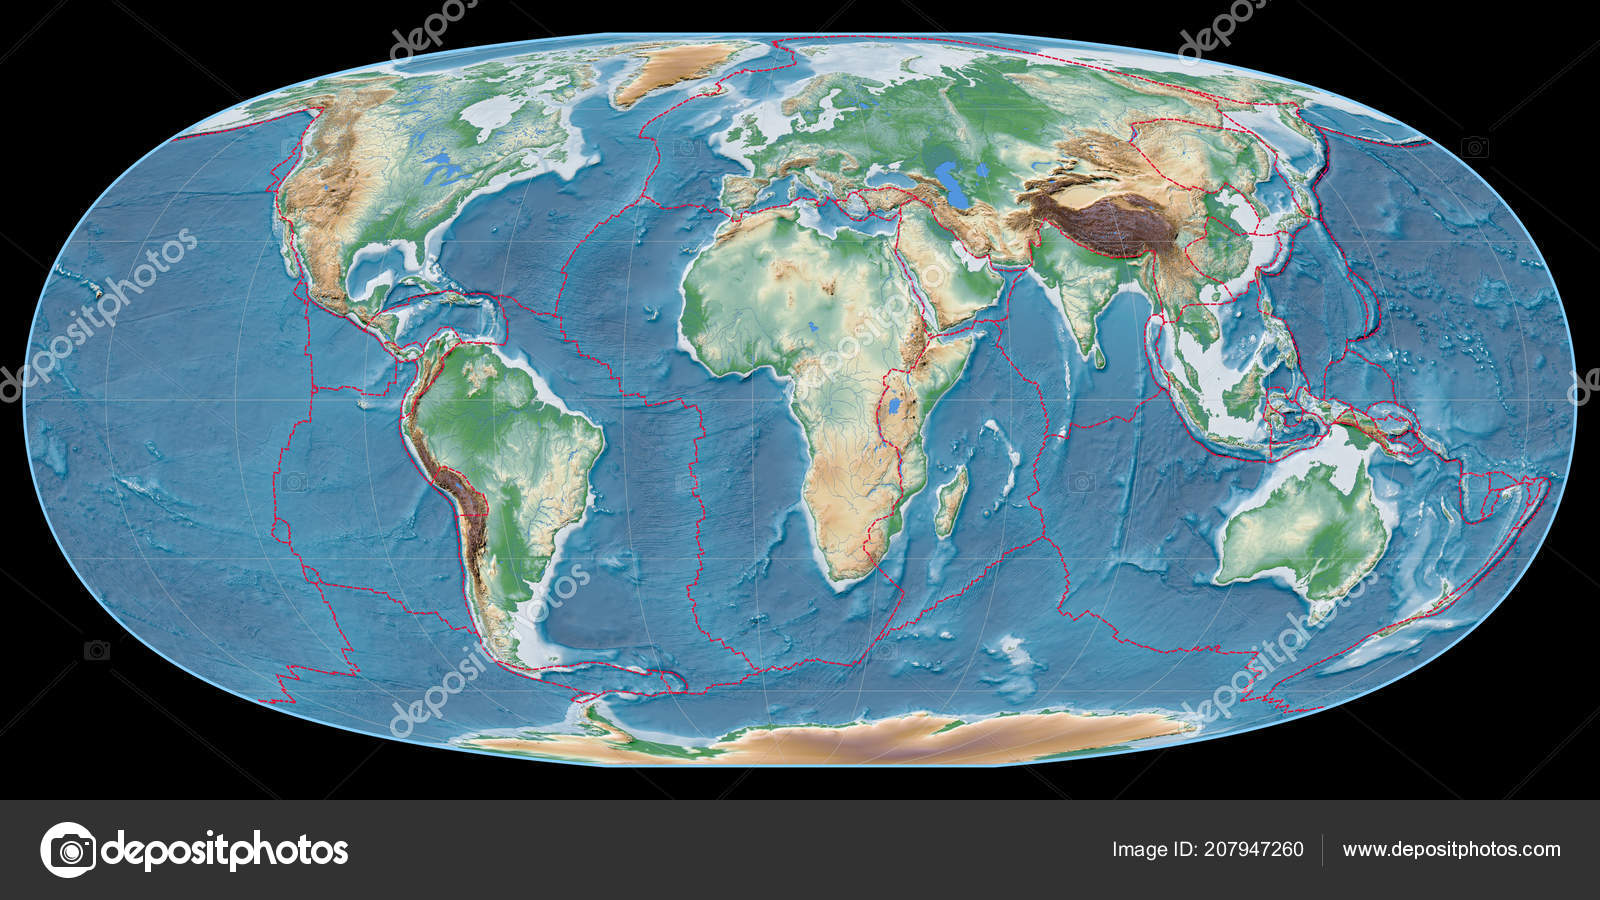 World Map Mcbryde Thomas Projection Centered East Longitude Colored ...